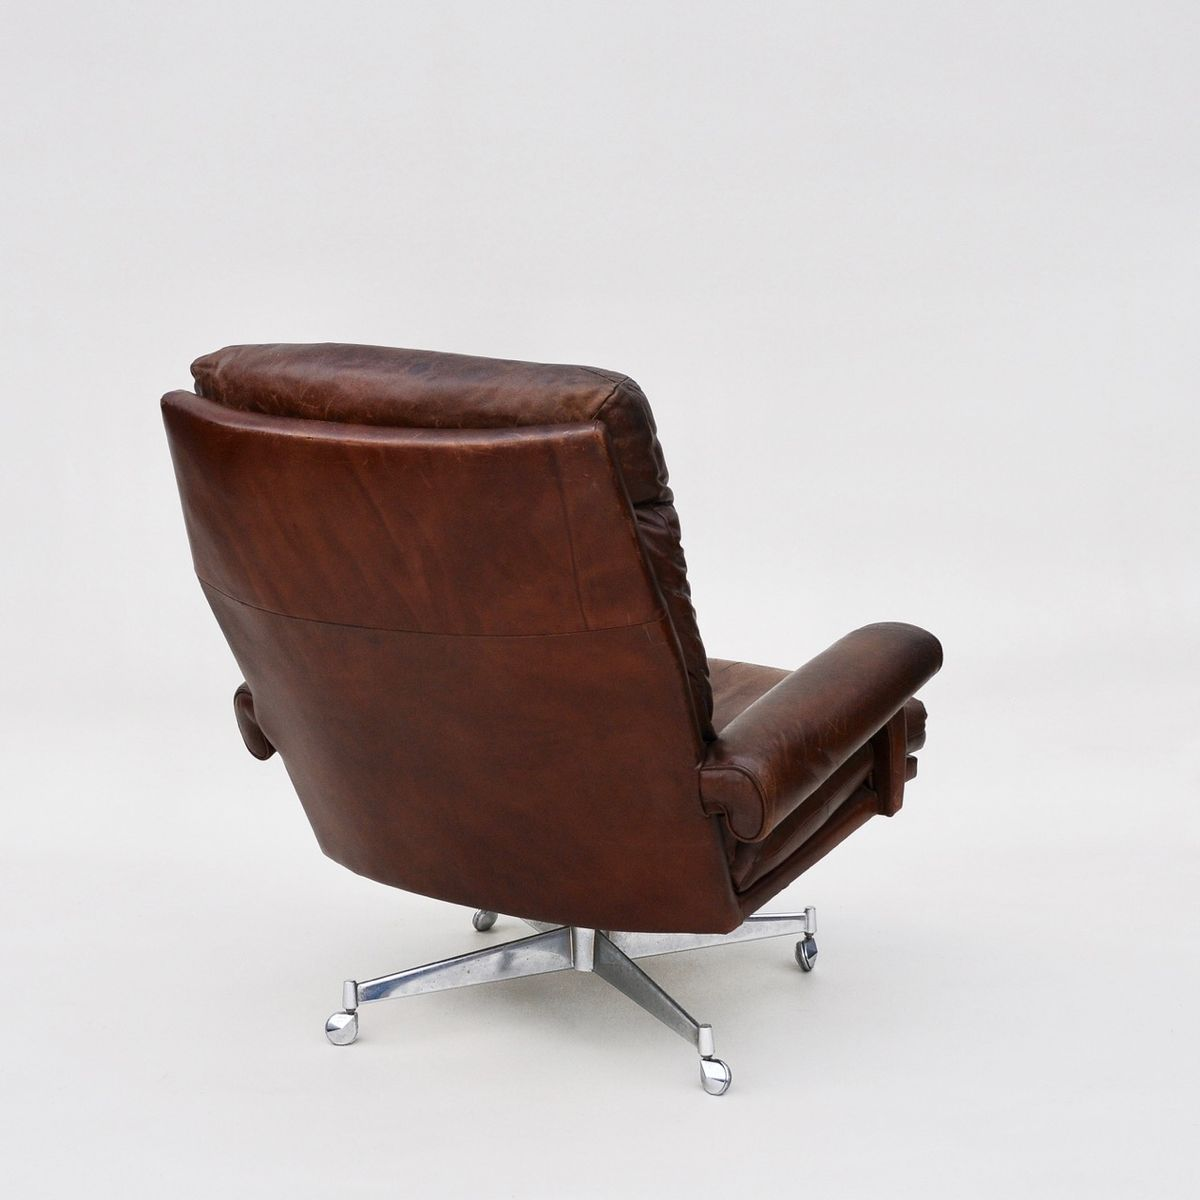 Leather Swivel Chairs 1960s Set Of 2 For Sale At Pamono